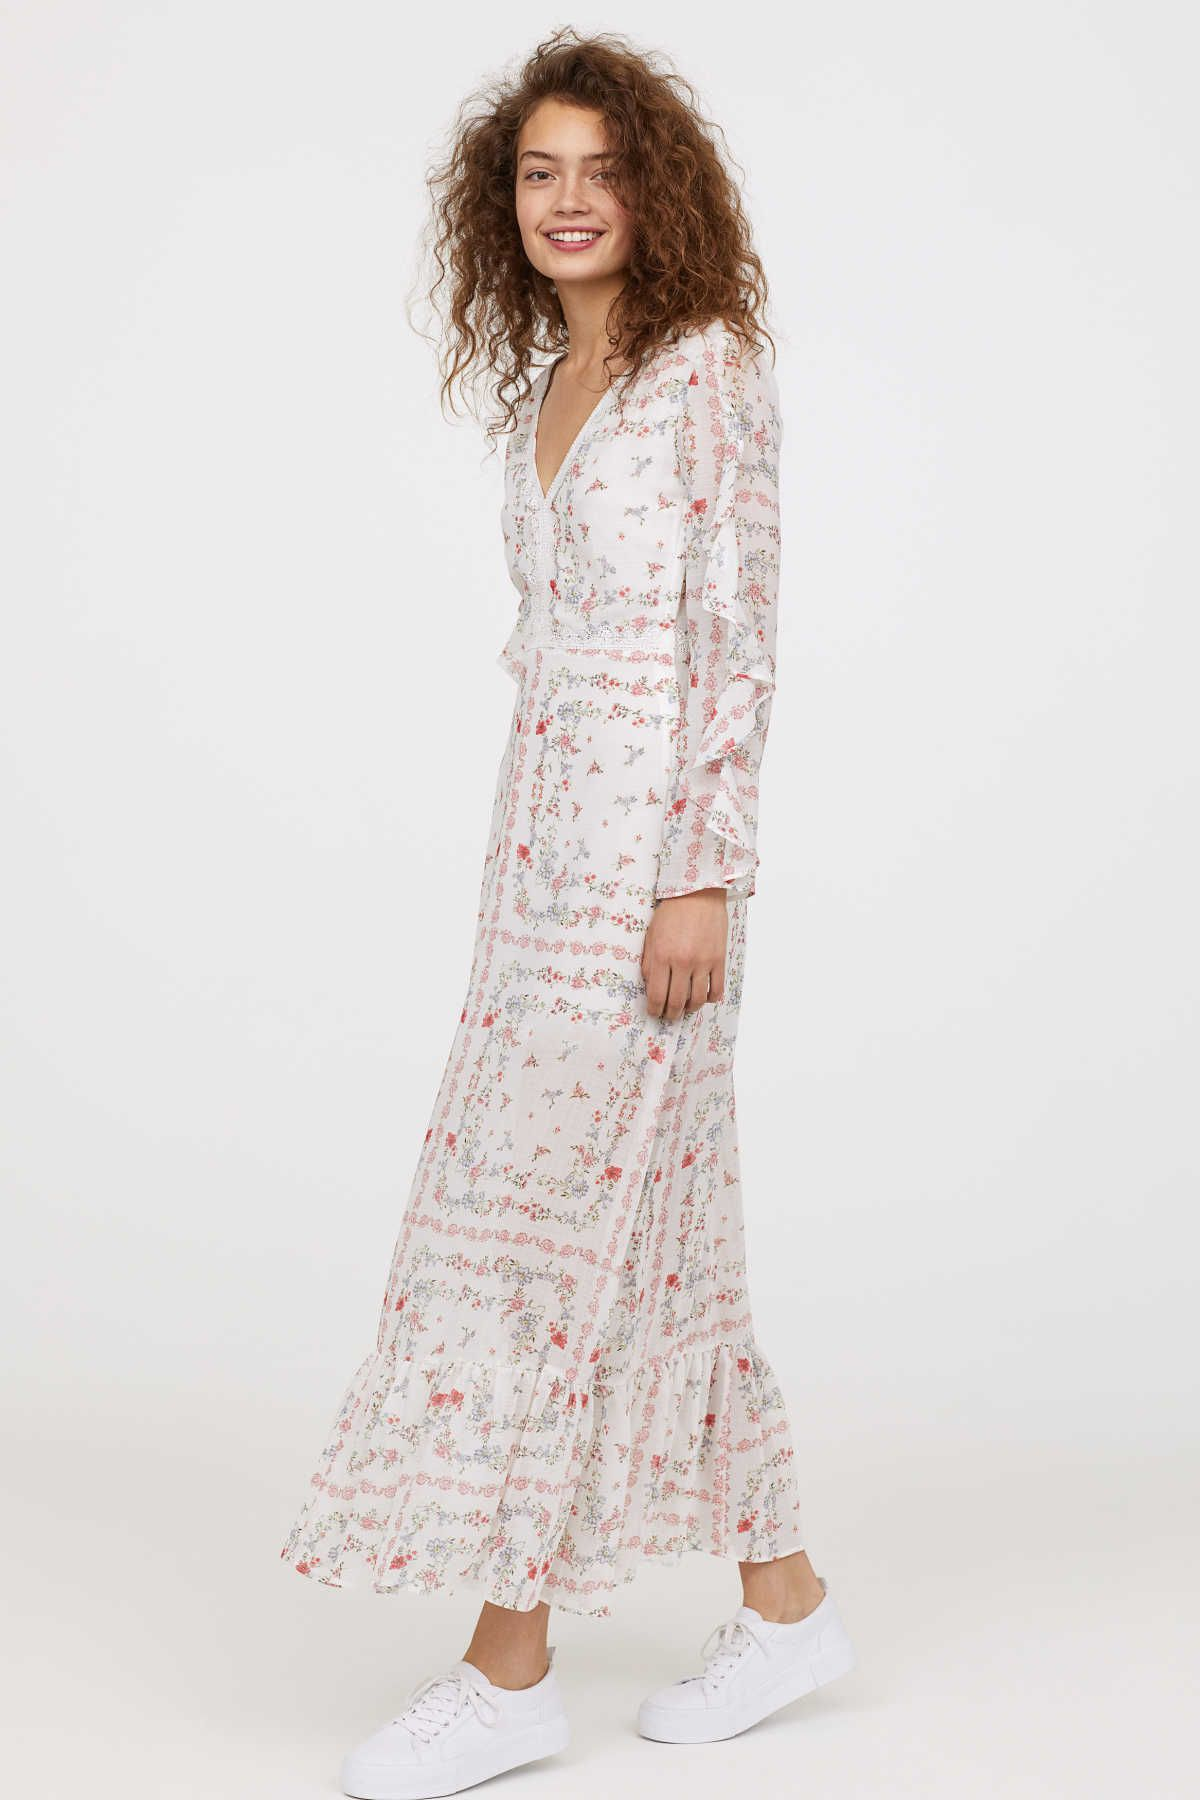 Whitefloral long dress in airy crinkled fabric with a printed